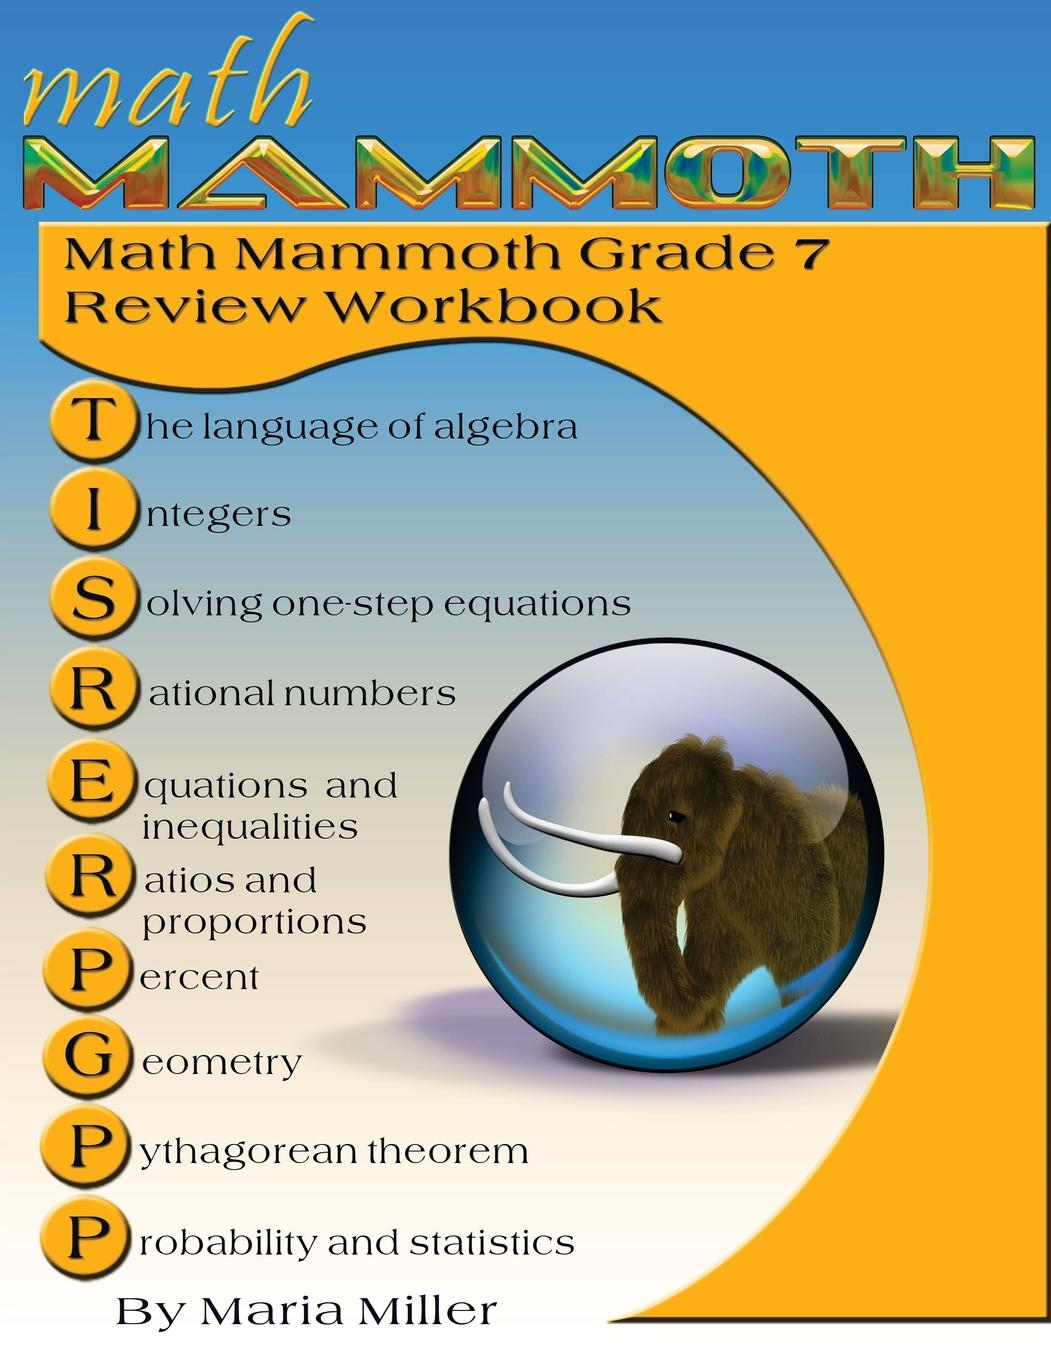 hight resolution of Math Mammoth Grade 7 Review Workbook - Walmart.com - Walmart.com